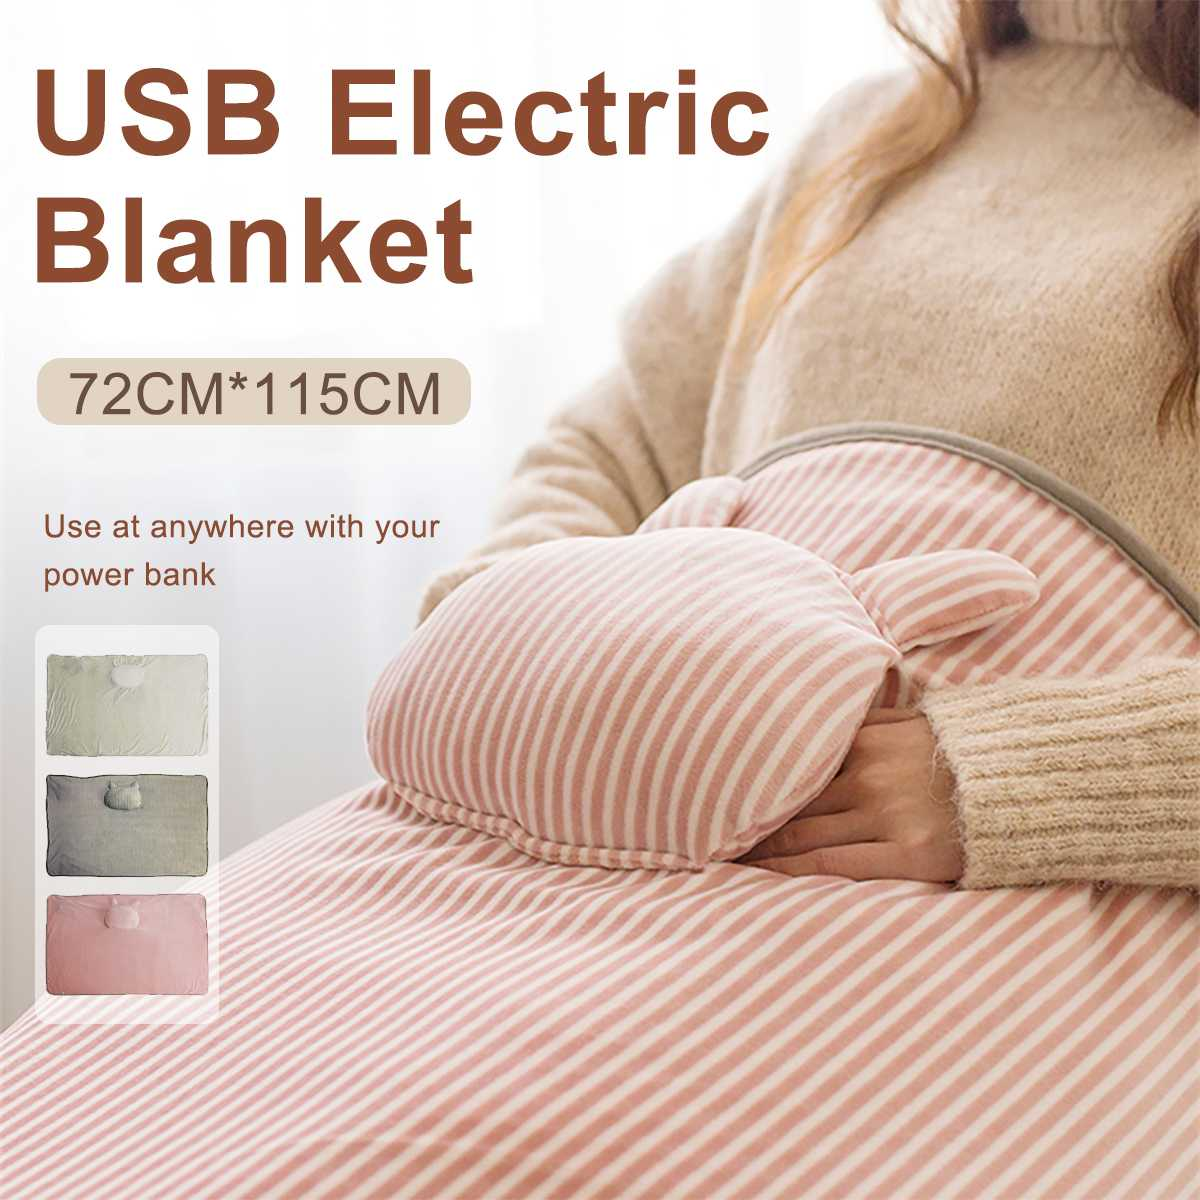 Portable USB Electric Blanket Heated Shawl Car Office Home Warm Neck Shoulder Heating Blanket Pad Multifunctional Winter